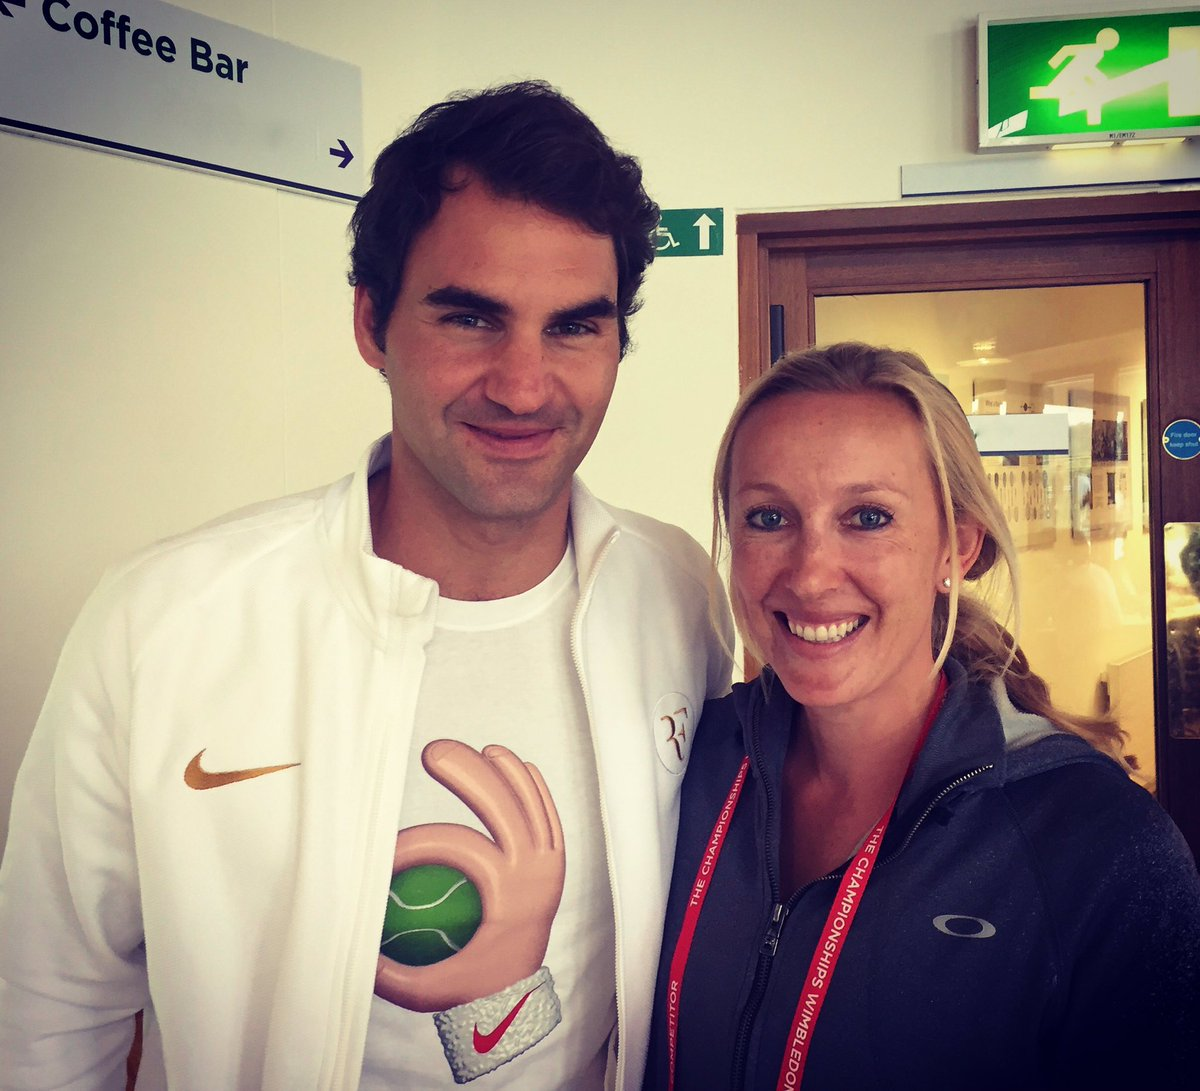 There is only one tennis player in the world I wanted a picture with and now I have it :) #GOAT #RogerFederer https://t.co/ku0m2uLzJ0